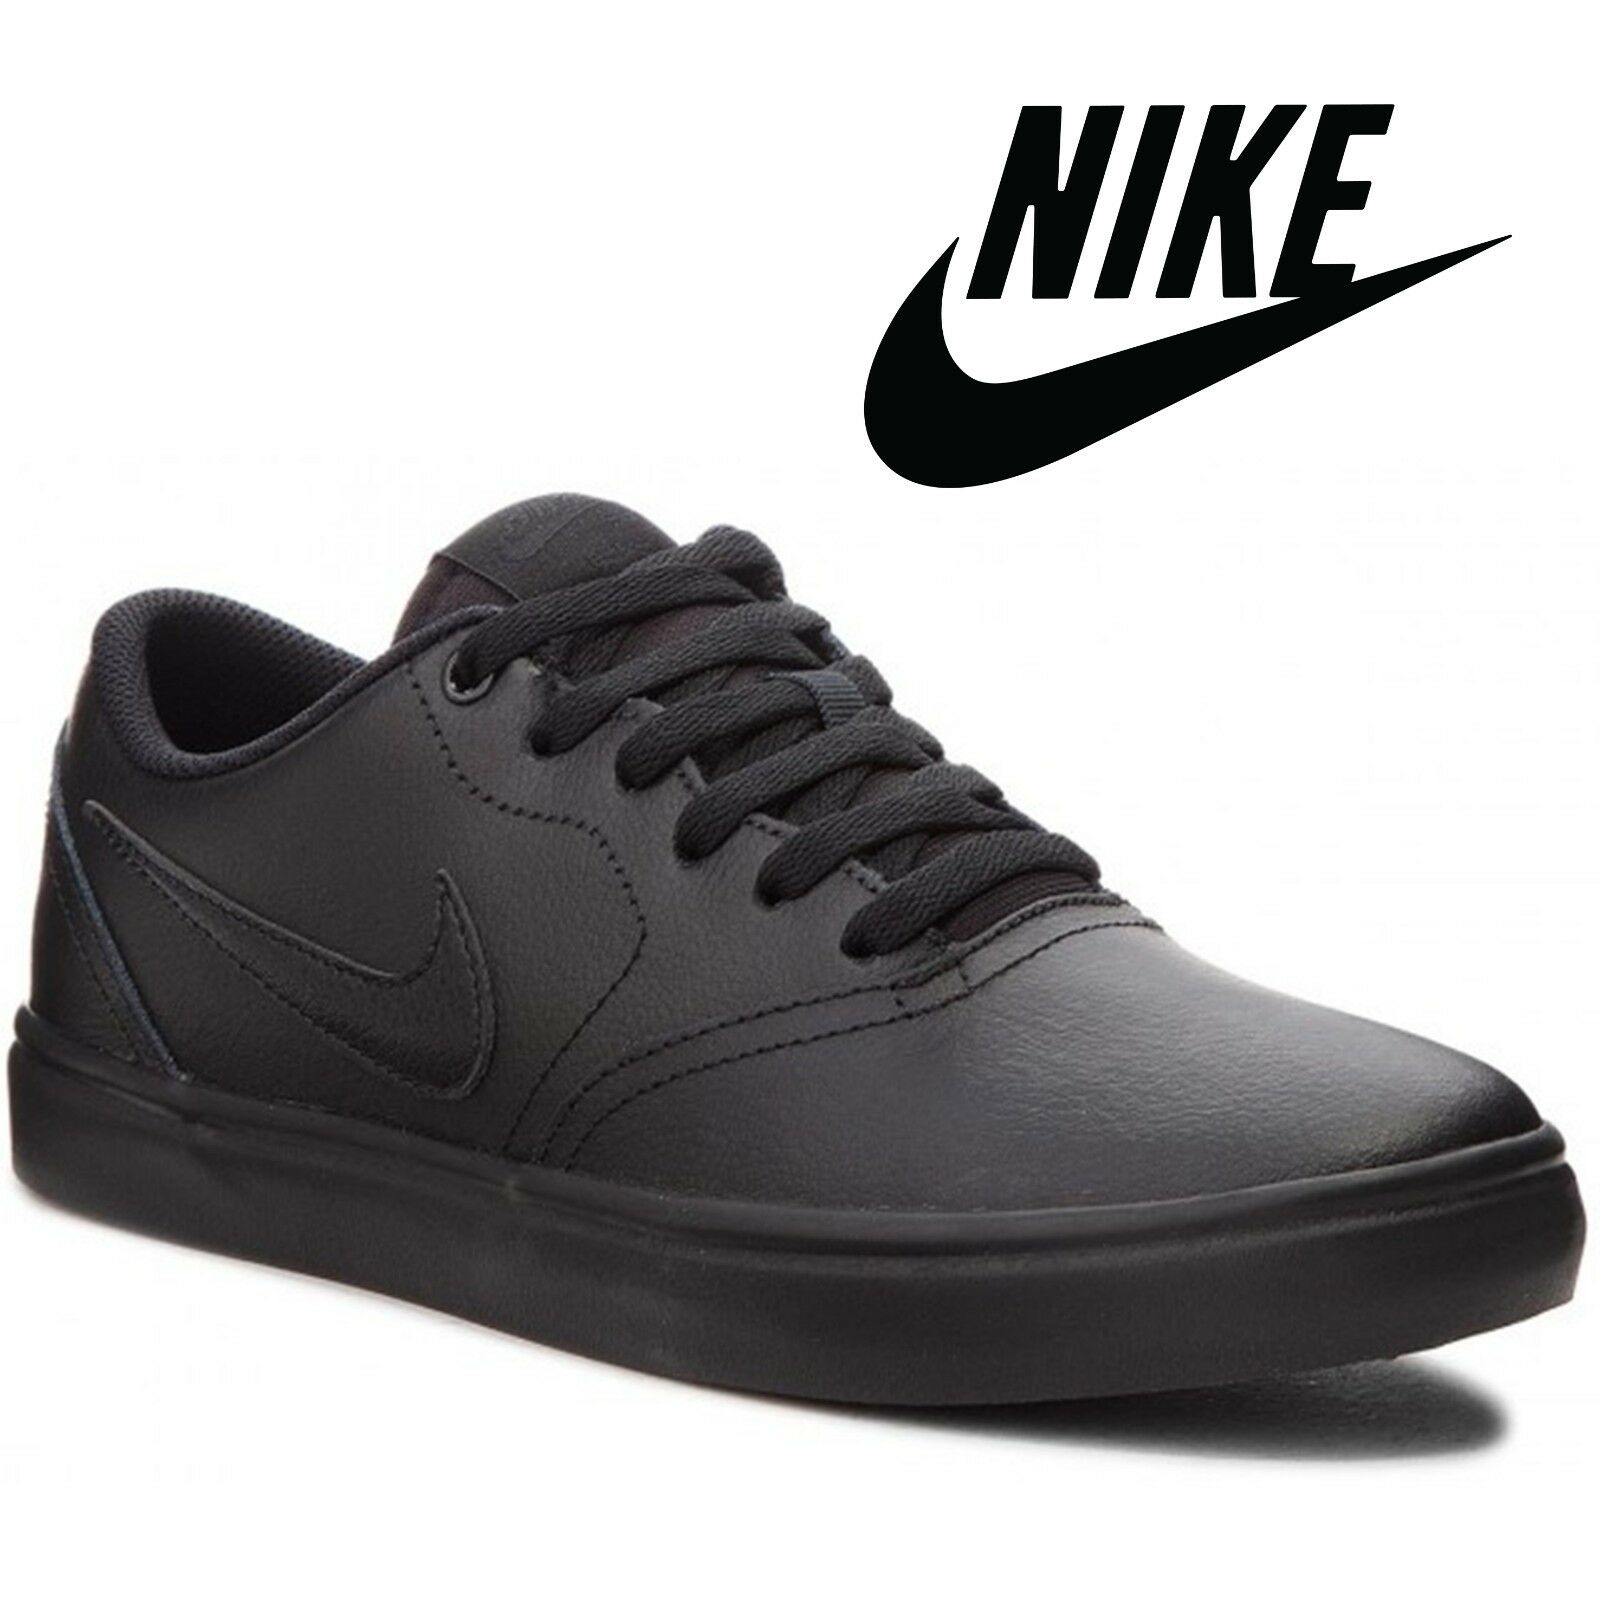 Nike SB Check Solarsoft Sports shoes Sneakers Trainers